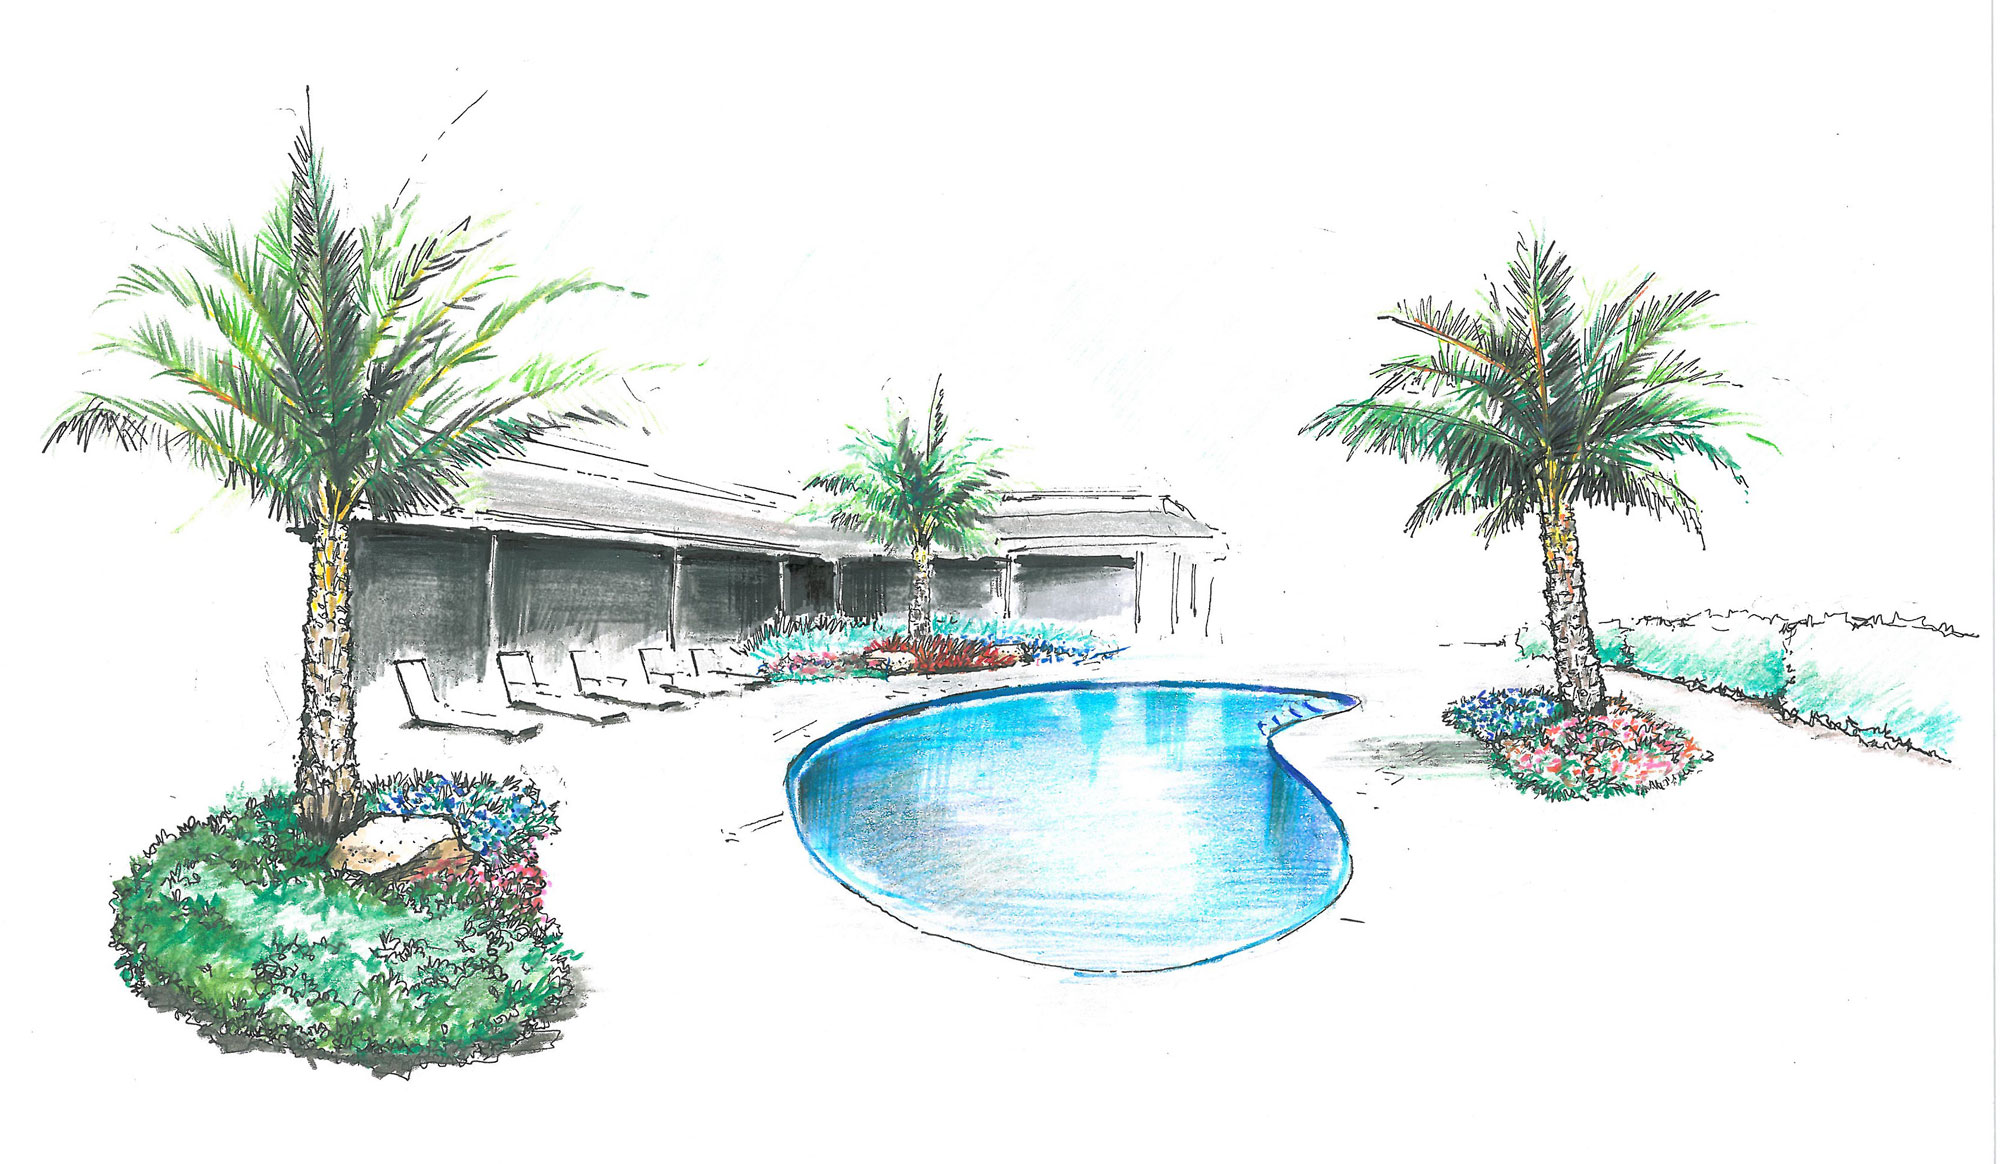 Reef Tropical Landscape Design